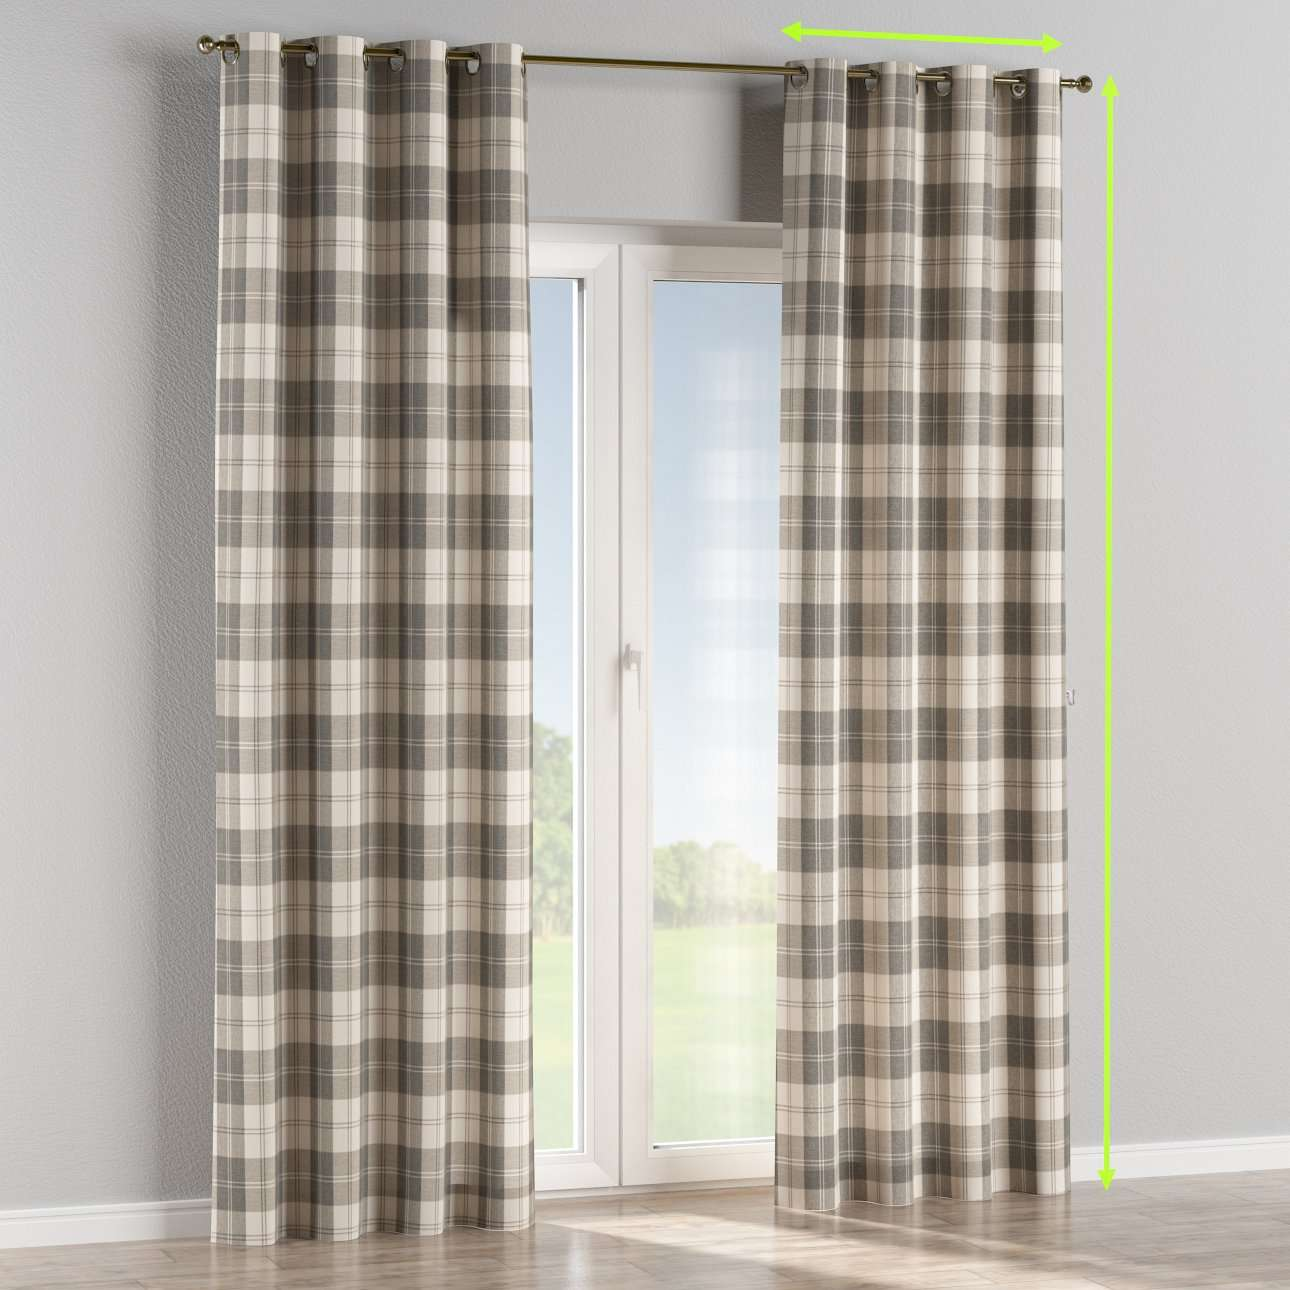 Eyelet lined curtains in collection Edinburgh, fabric: 115-79